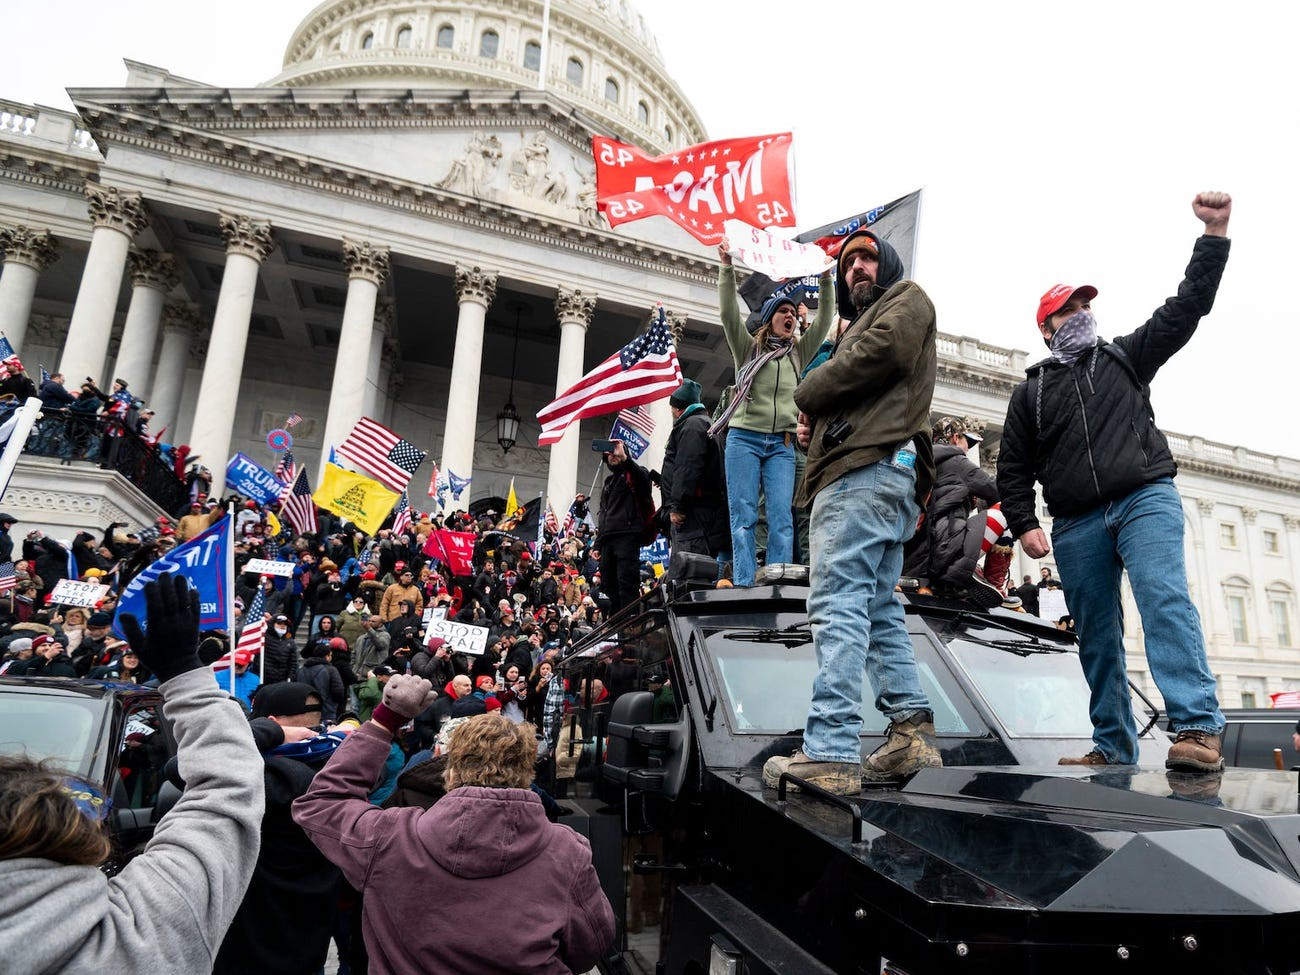 Trump supporters stand on the US Capitol Police armored vehicle as others take over the steps of the Capitol.